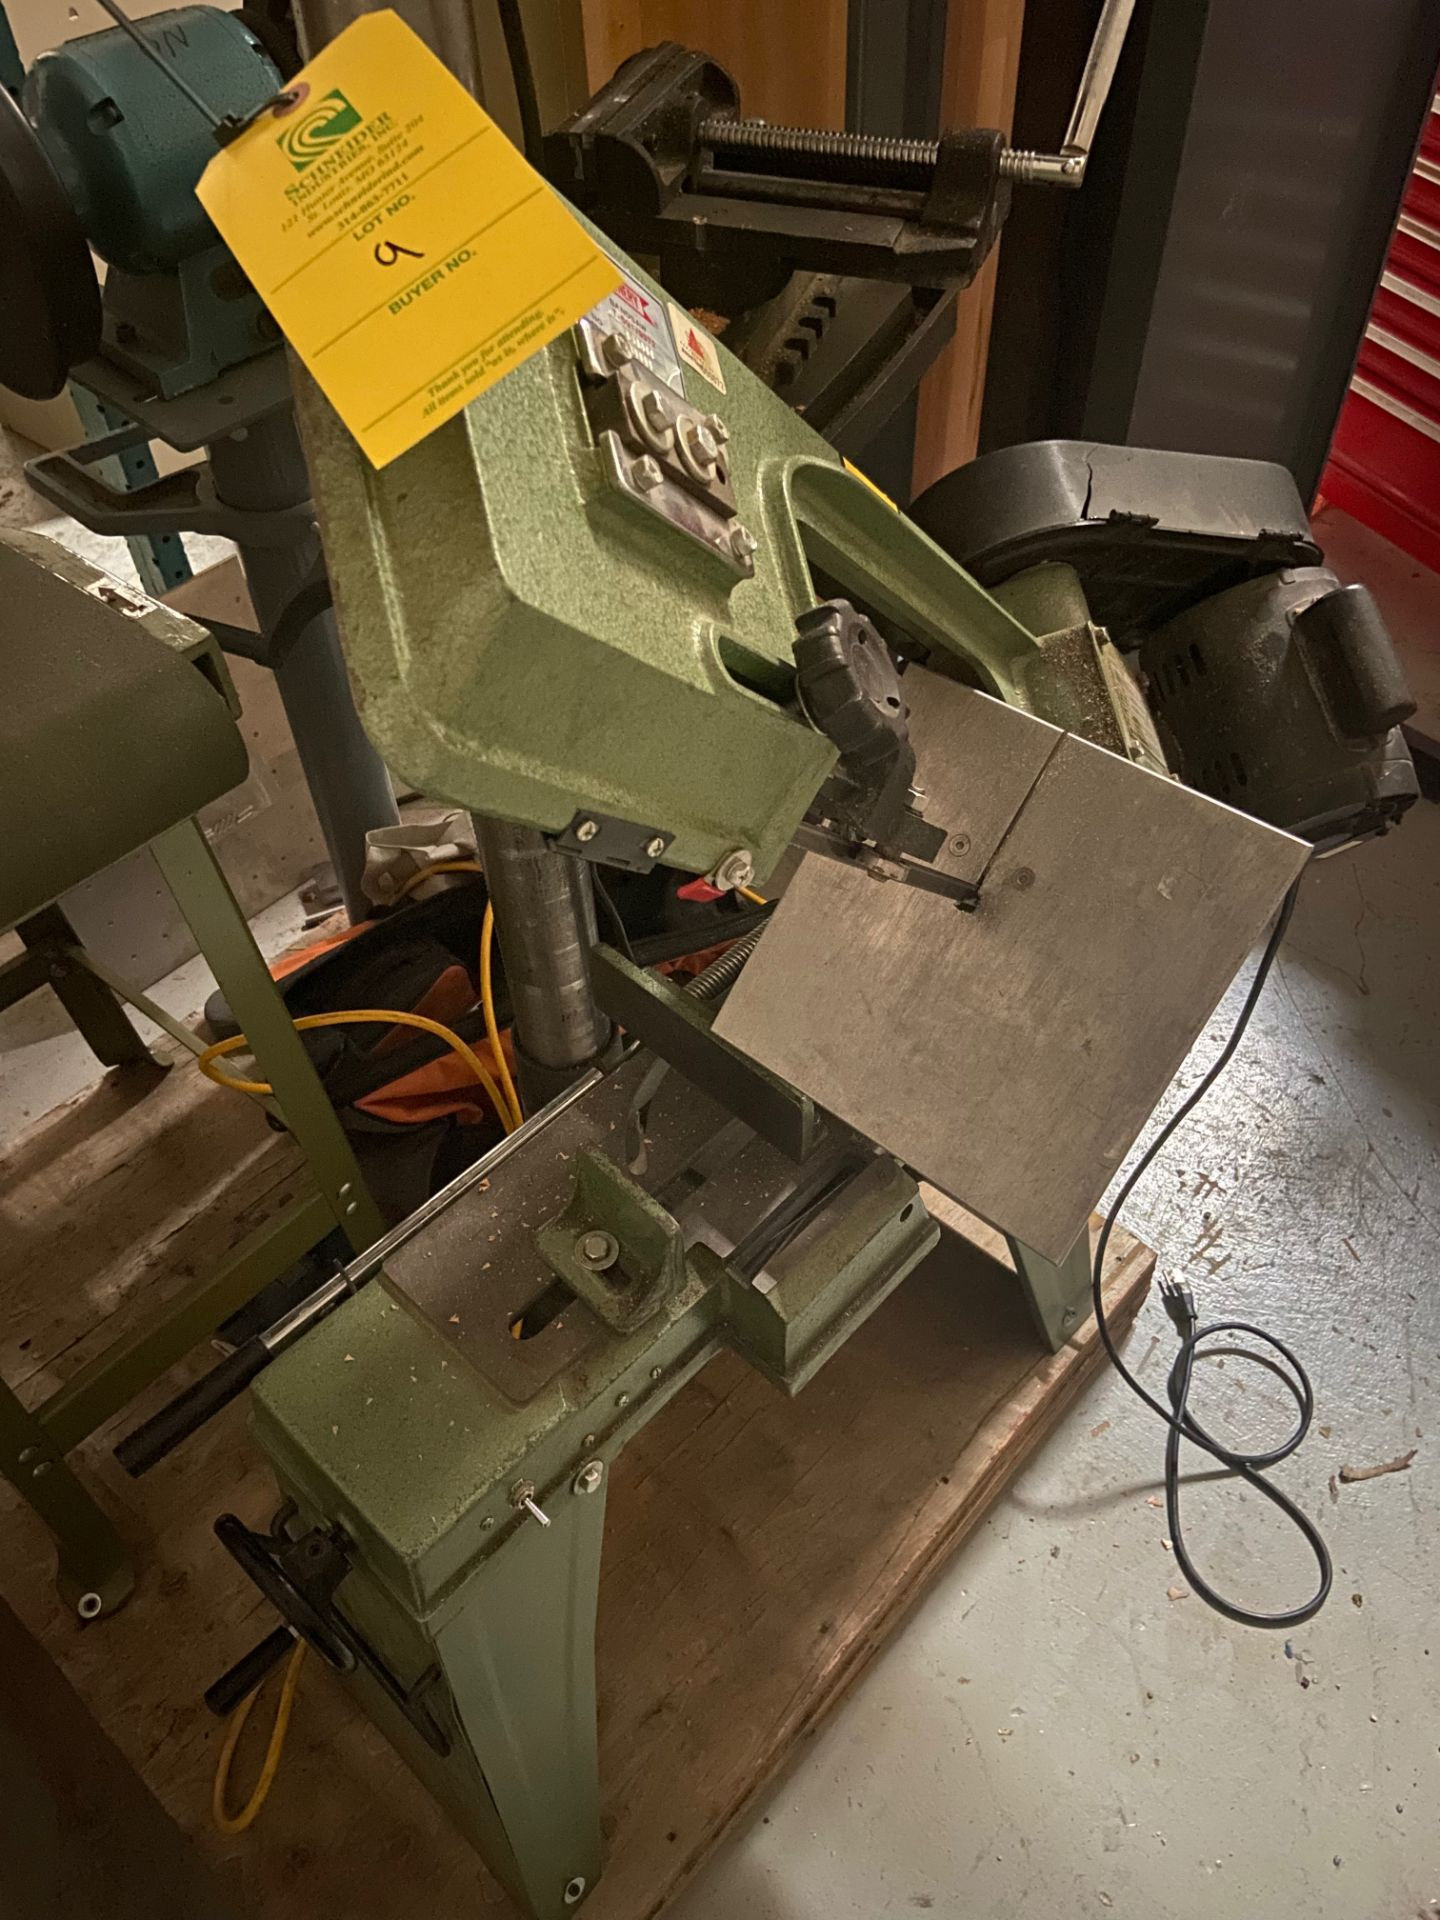 Central Machinery Heavy Duty Bandsaw, Model# T-591/9972, Serial# 660880, Loading/Removal Fee: $25 - Image 4 of 5